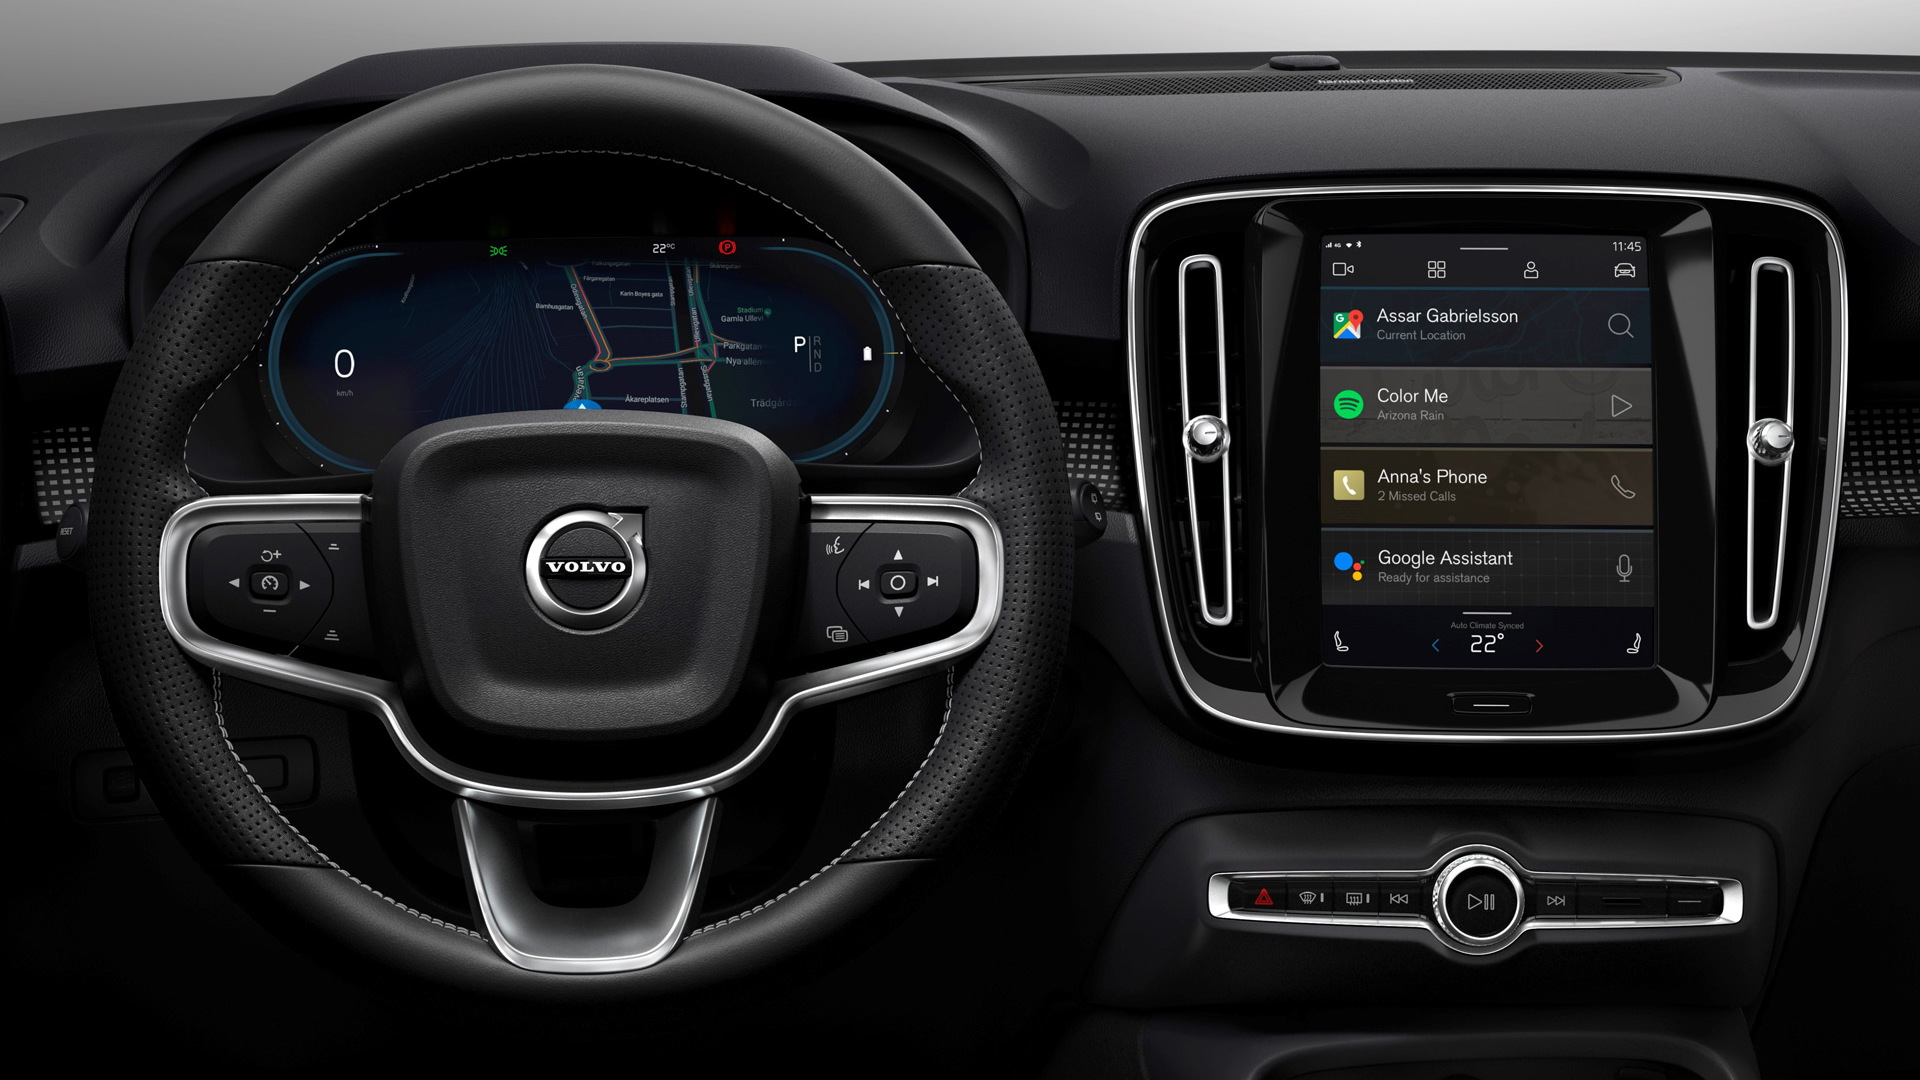 Volvo XC40 Electric to debut Android-based infotainment system